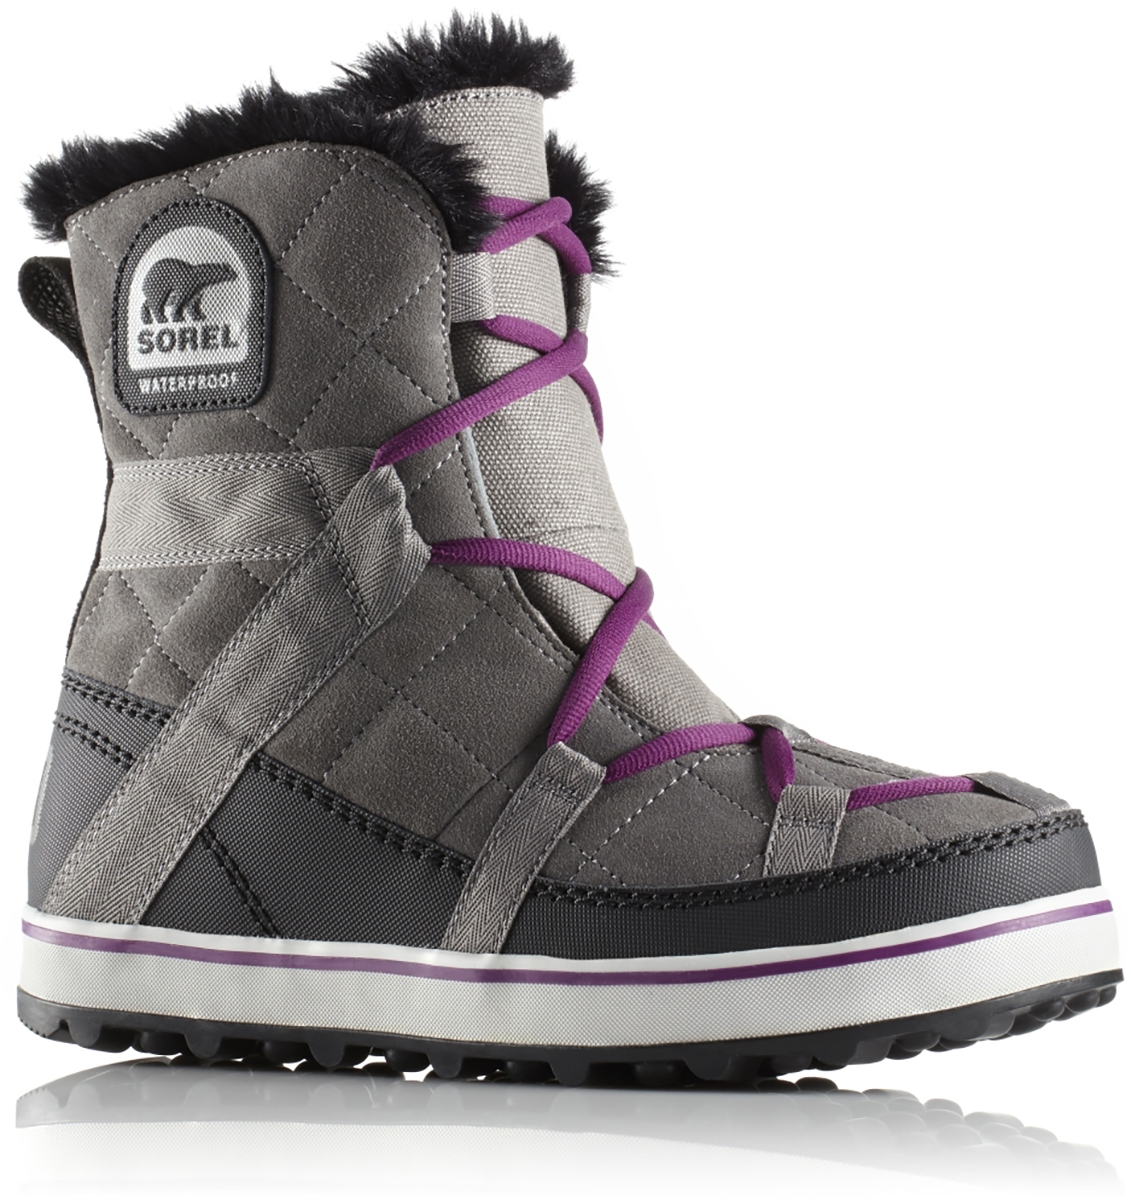 Wiggle | Sorel Women's Glacy Explorer Shortie Boots | Boots